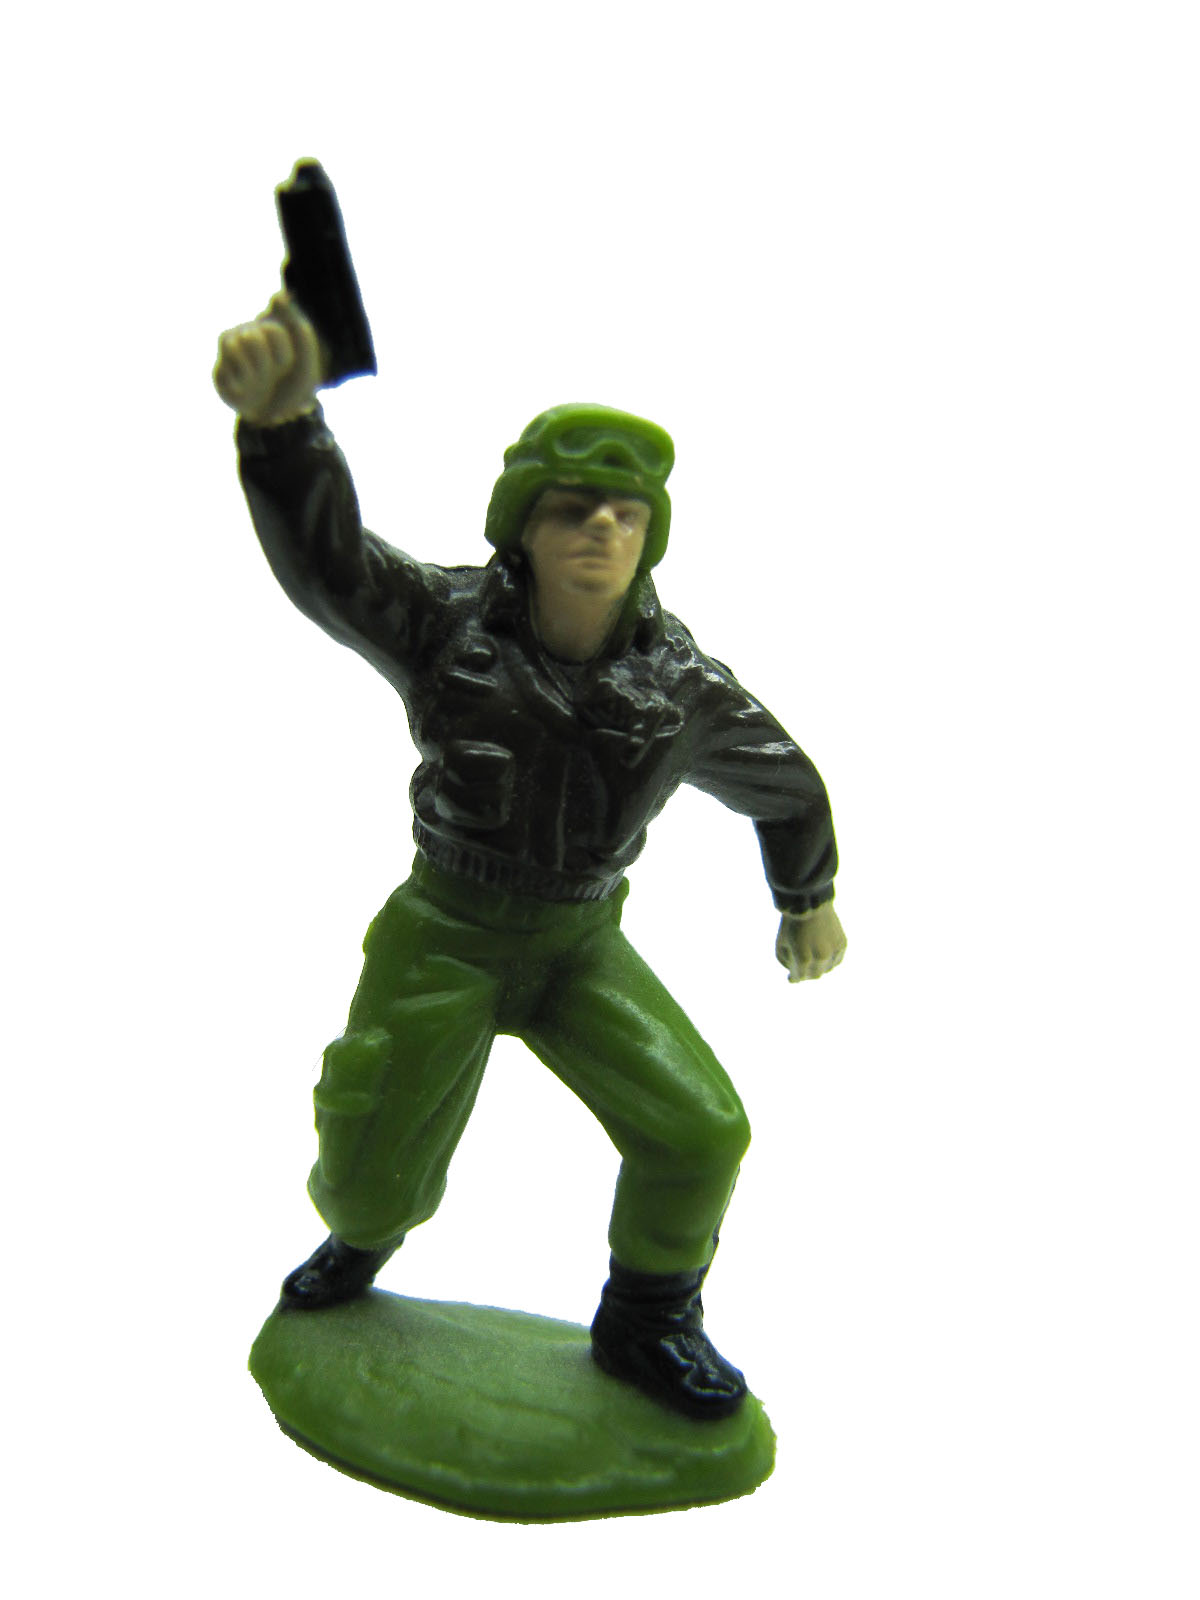 GIJoe Micro Series General Hawk